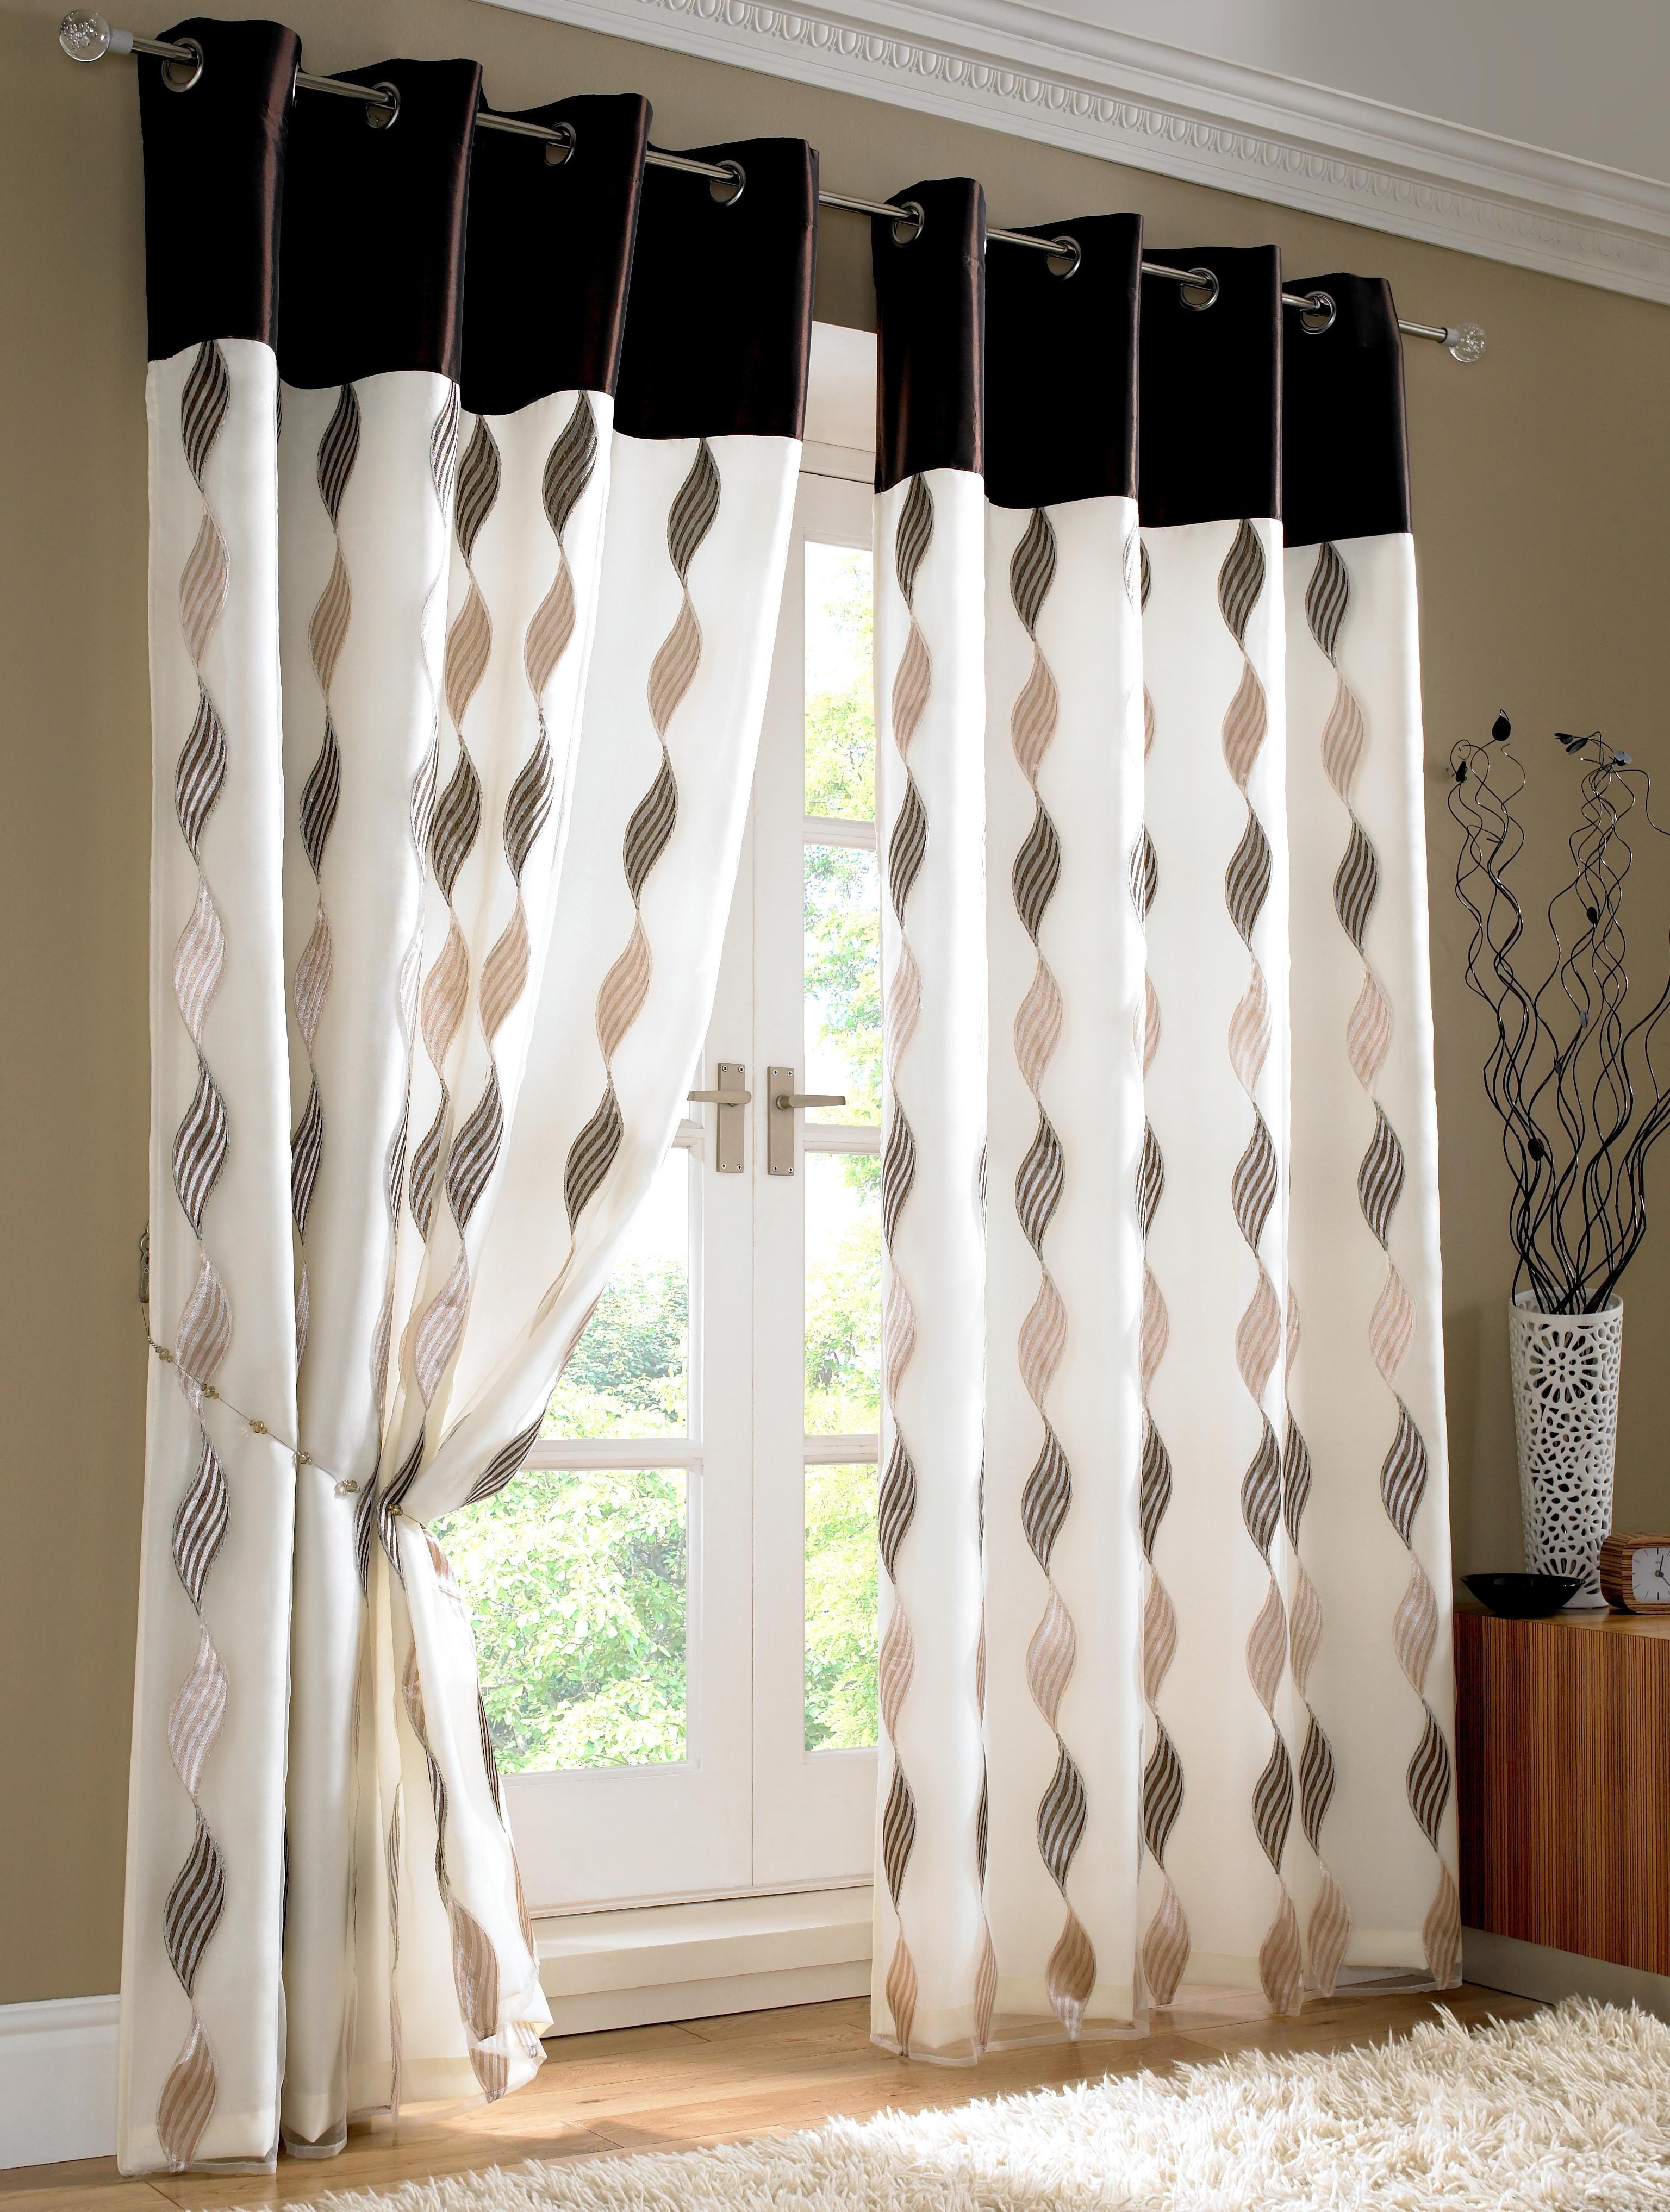 Window coverings types  when buying designer curtains  drapery room ideas  contempoarary